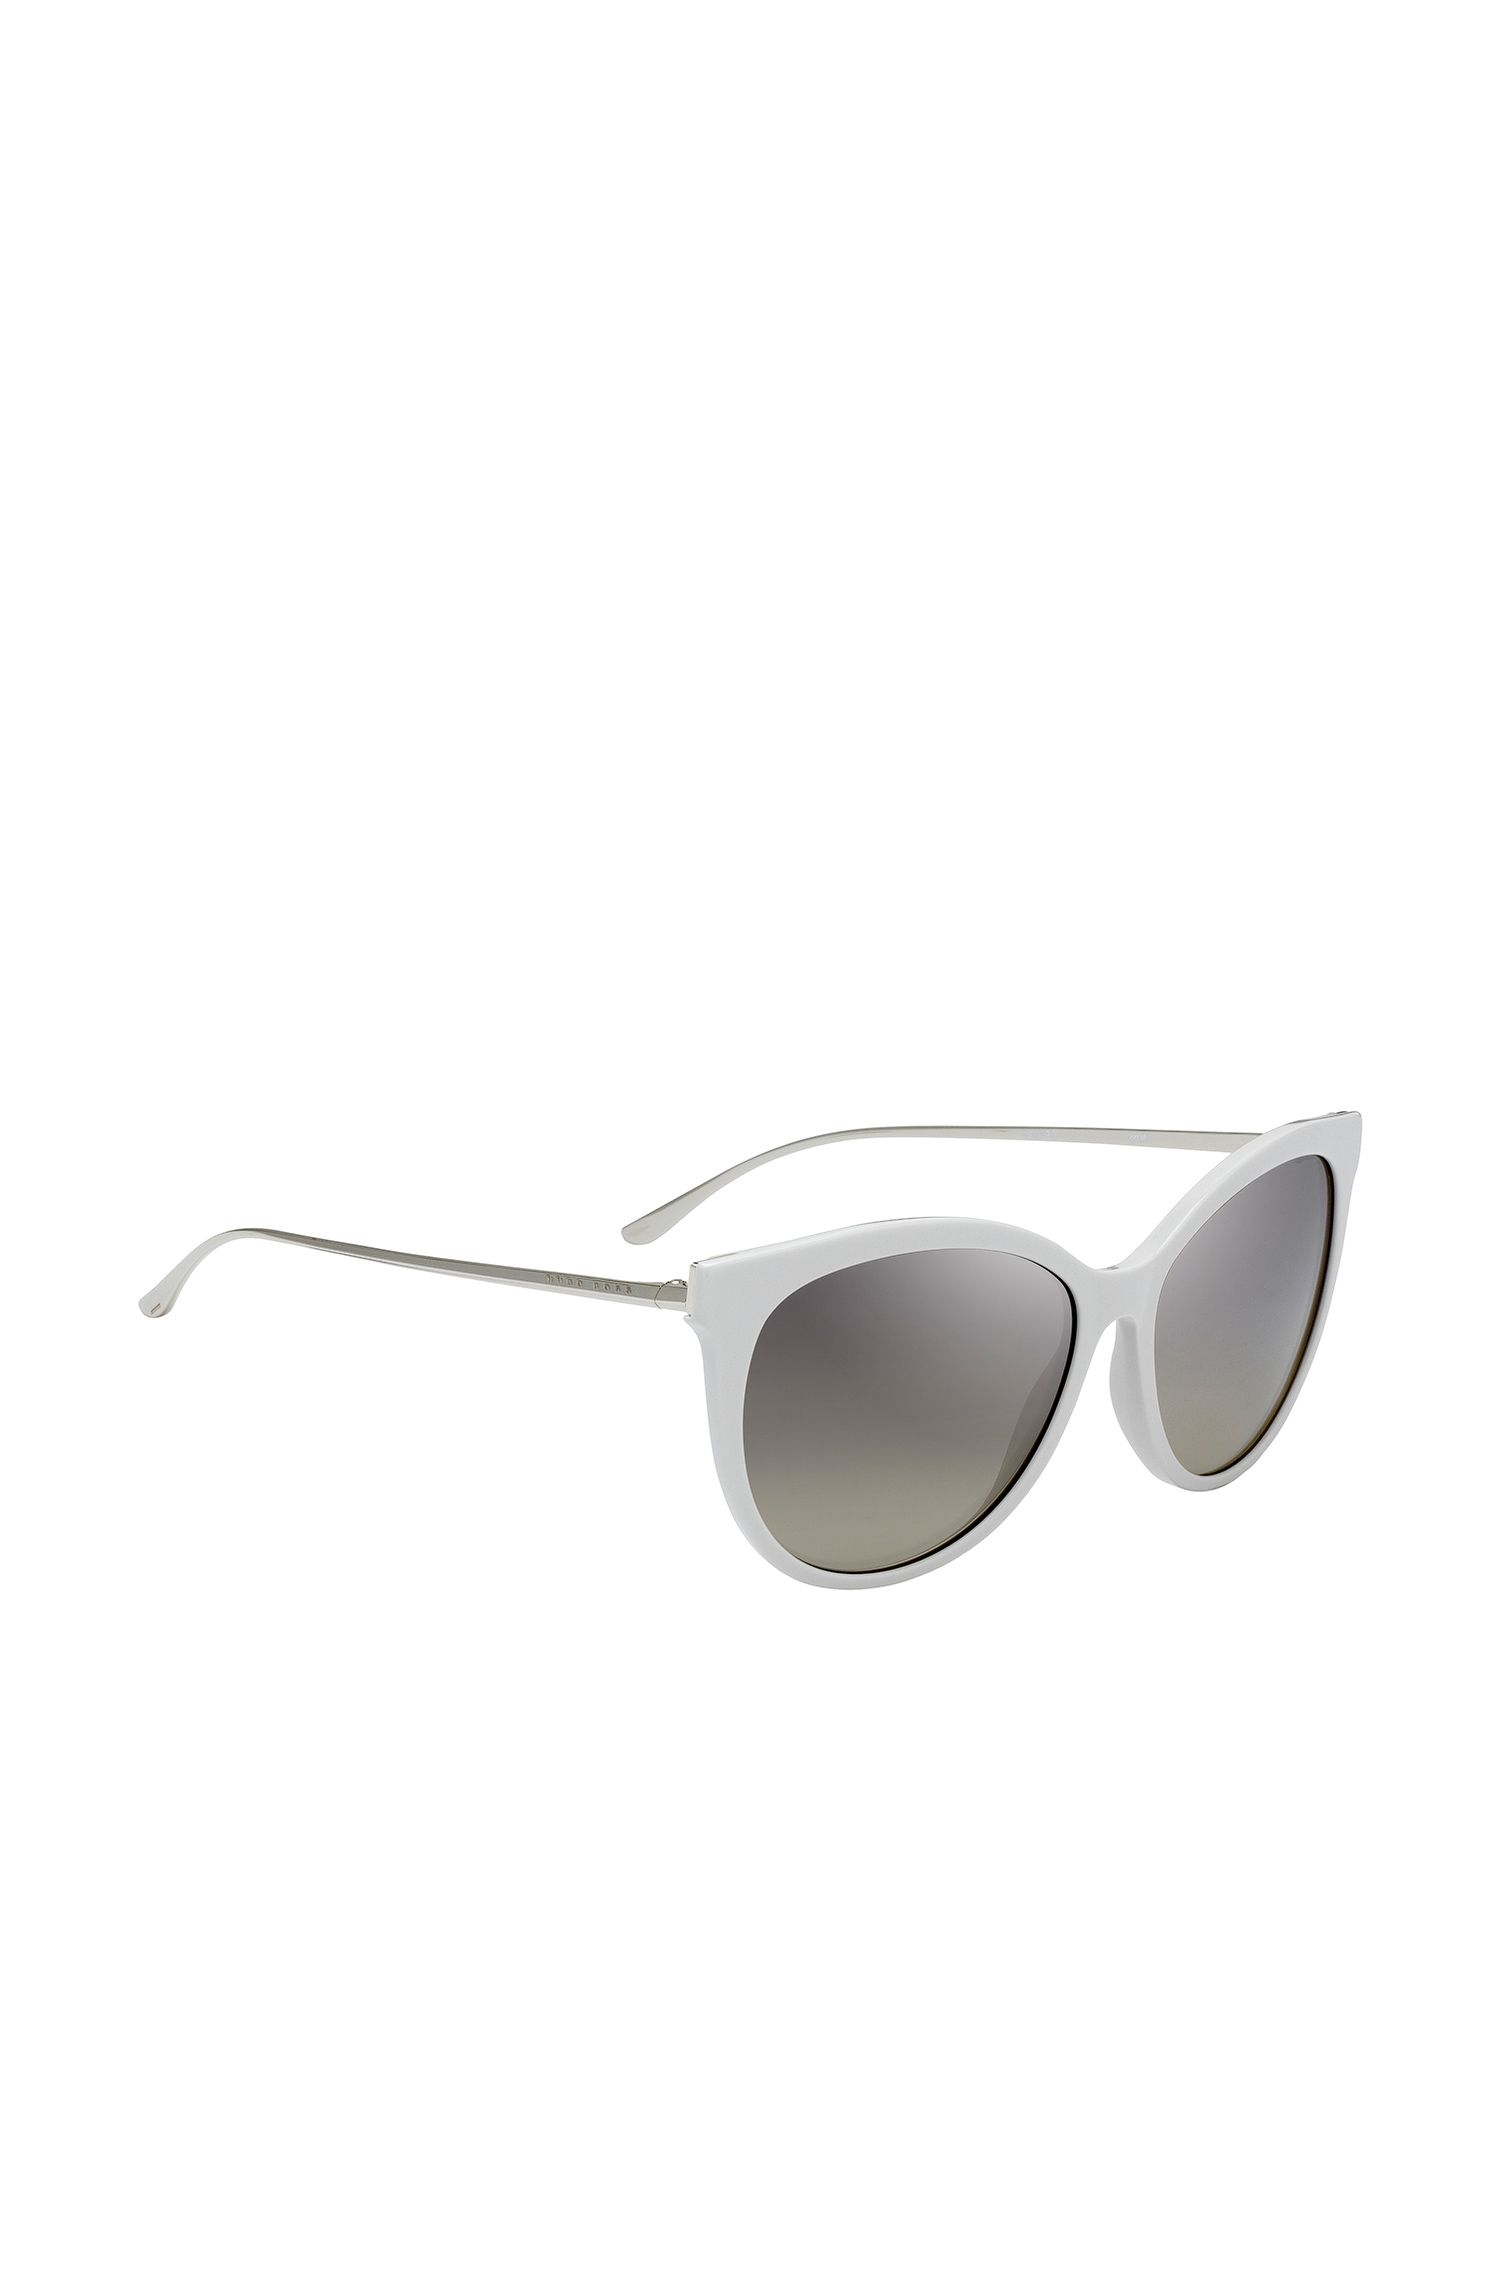 'BOSS 0892S' | White Cat-Eye Sunglasses